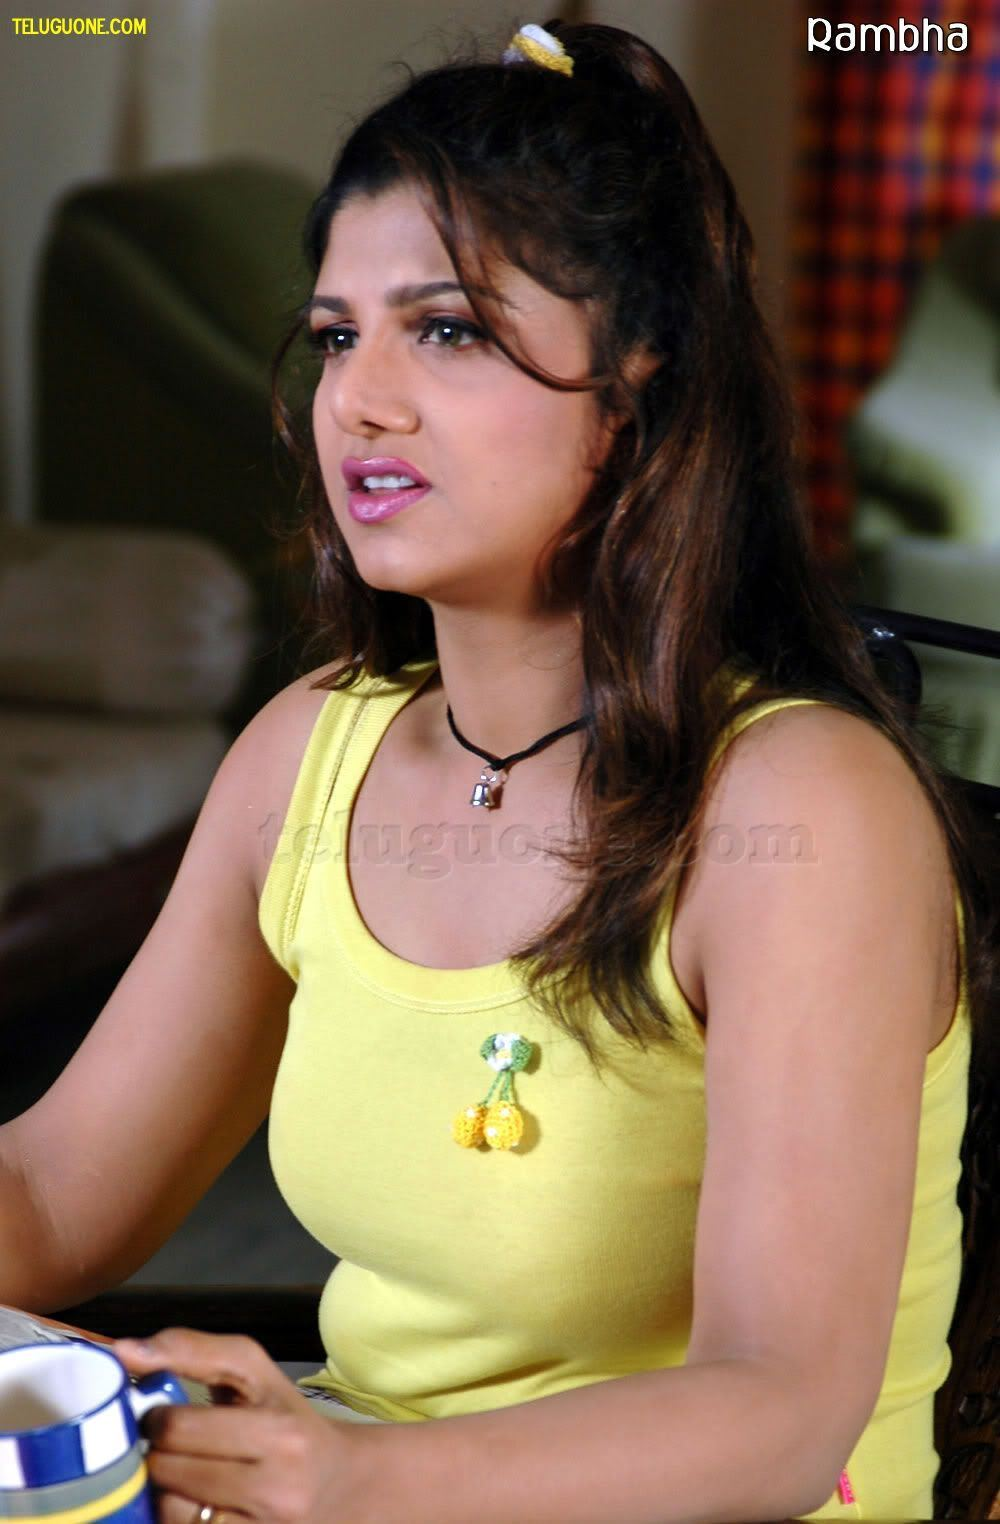 Images butts rambha nude already discussed recently